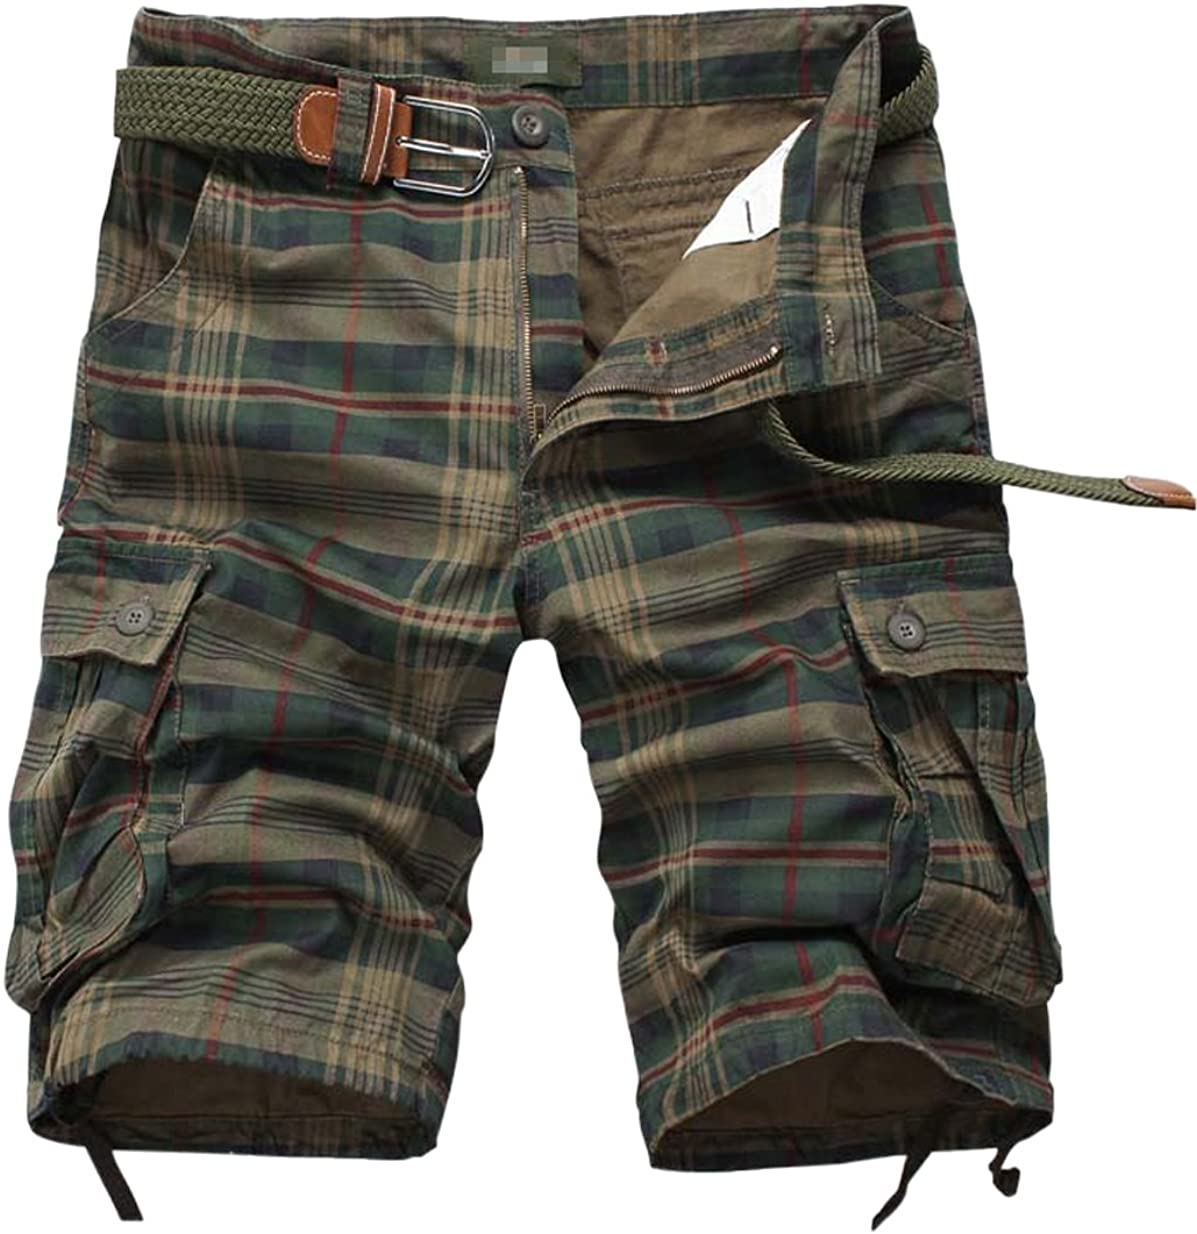 Uaneo Men's Casual Regular Fit Plaid Cotton Cargo Walk Shorts with Multi Pockets (Green, Large)